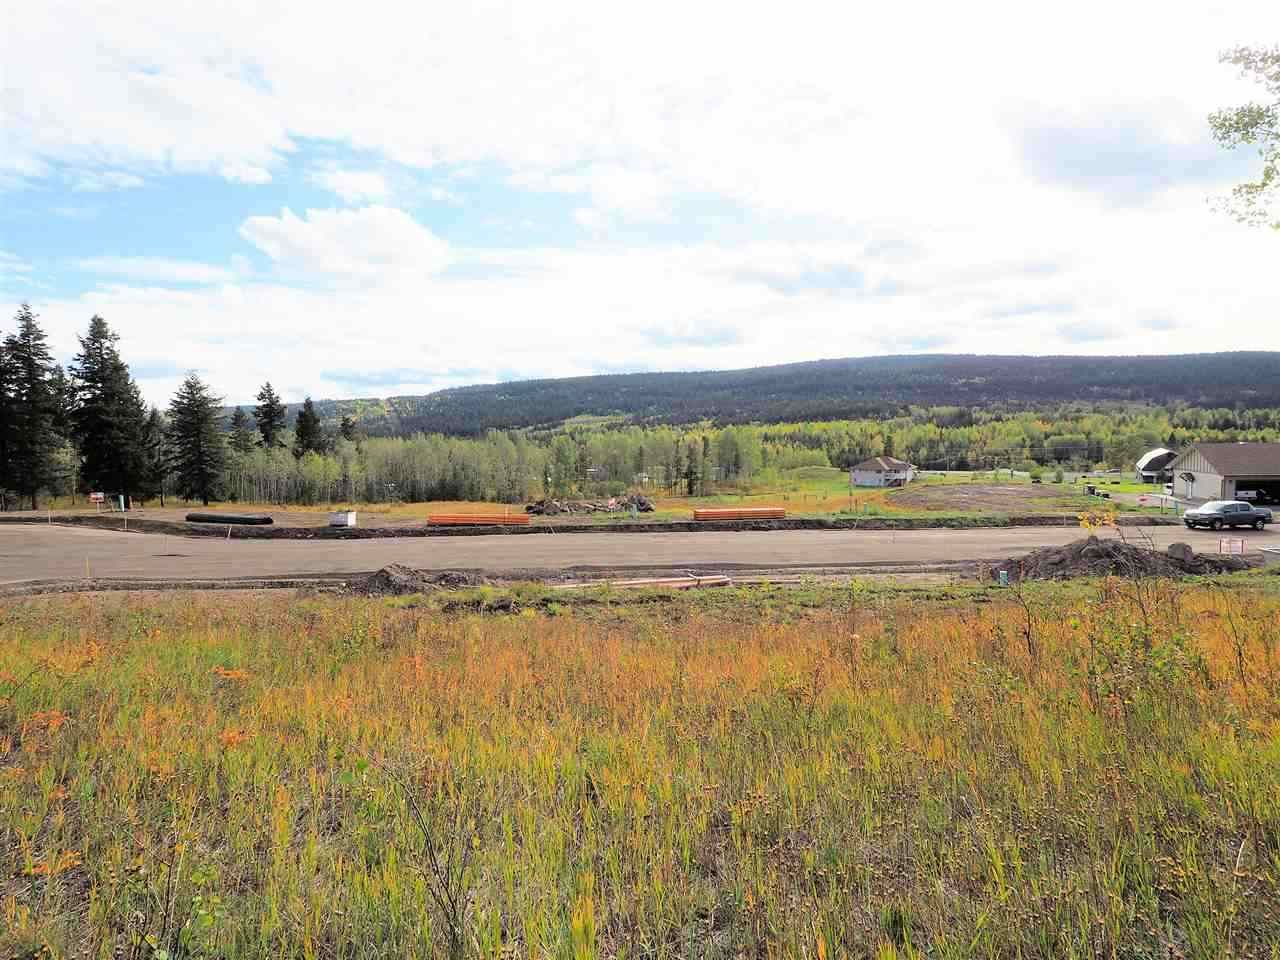 Main Photo: LOT 20 BLACKSTOCK Road in 100 Mile House: 100 Mile House - Town Land for sale (100 Mile House (Zone 10))  : MLS®# R2525437